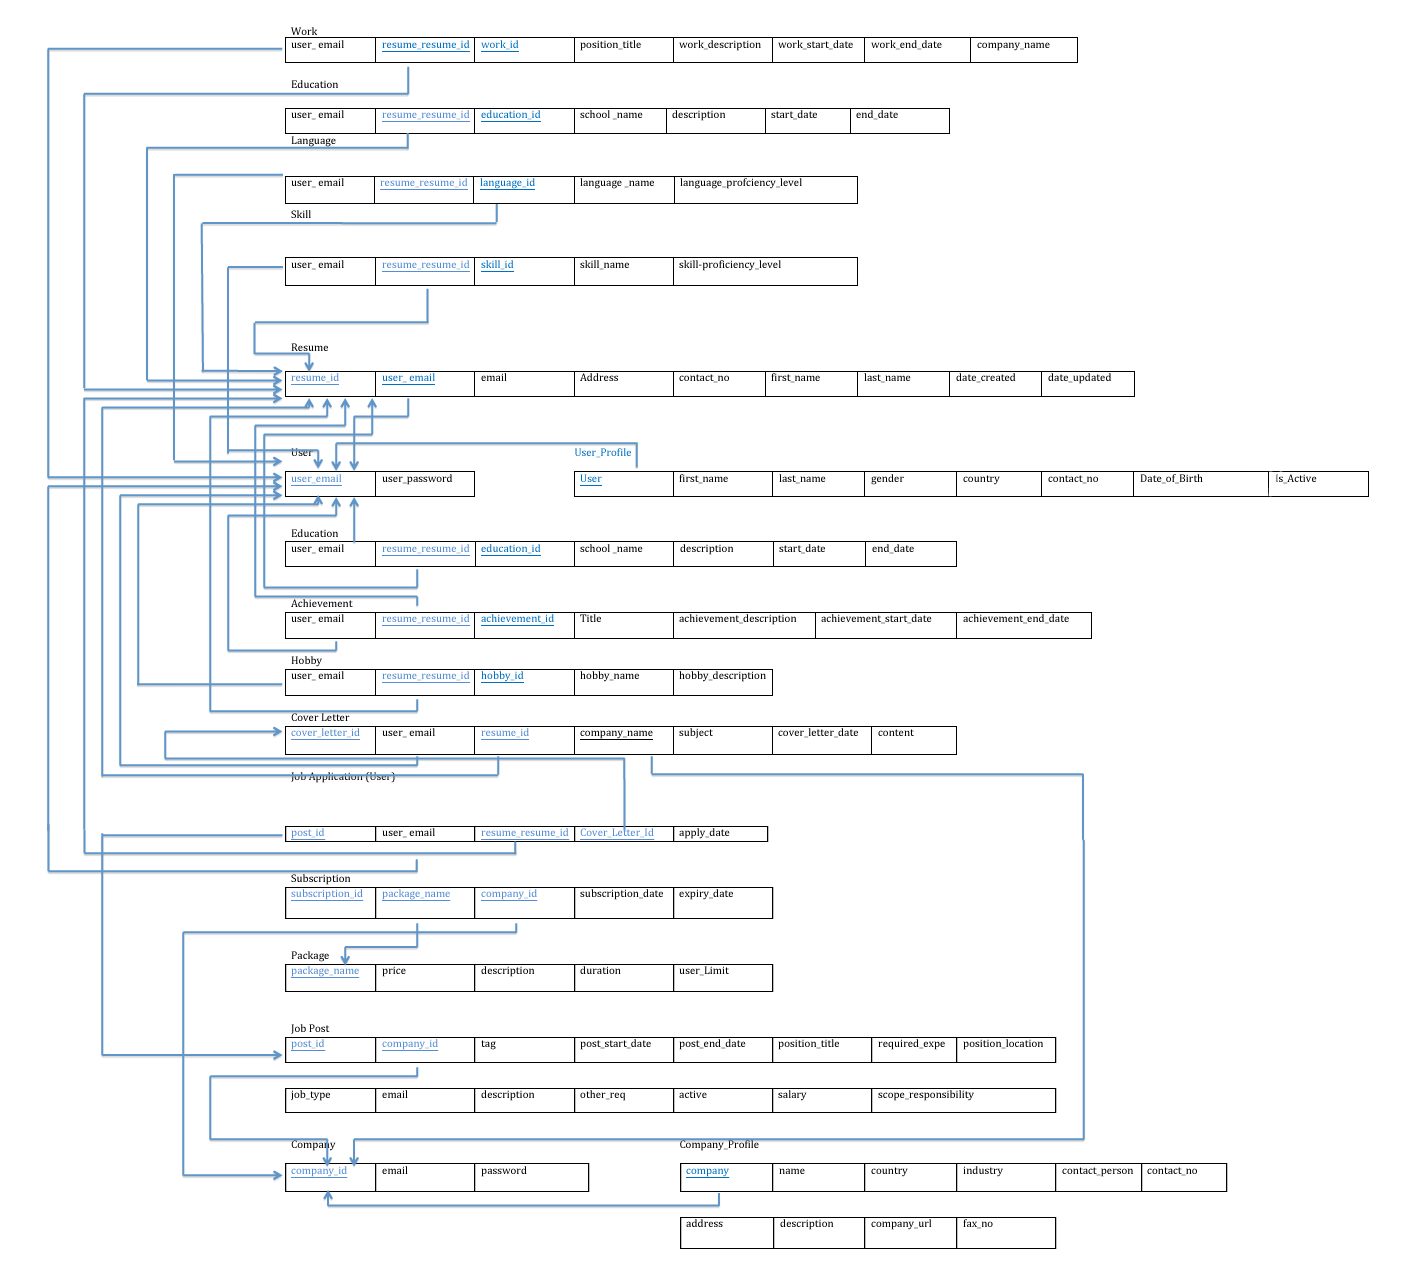 Is480 team wiki 2012t1 one hit wonder project documentation logical diagram version 10 pooptronica Images